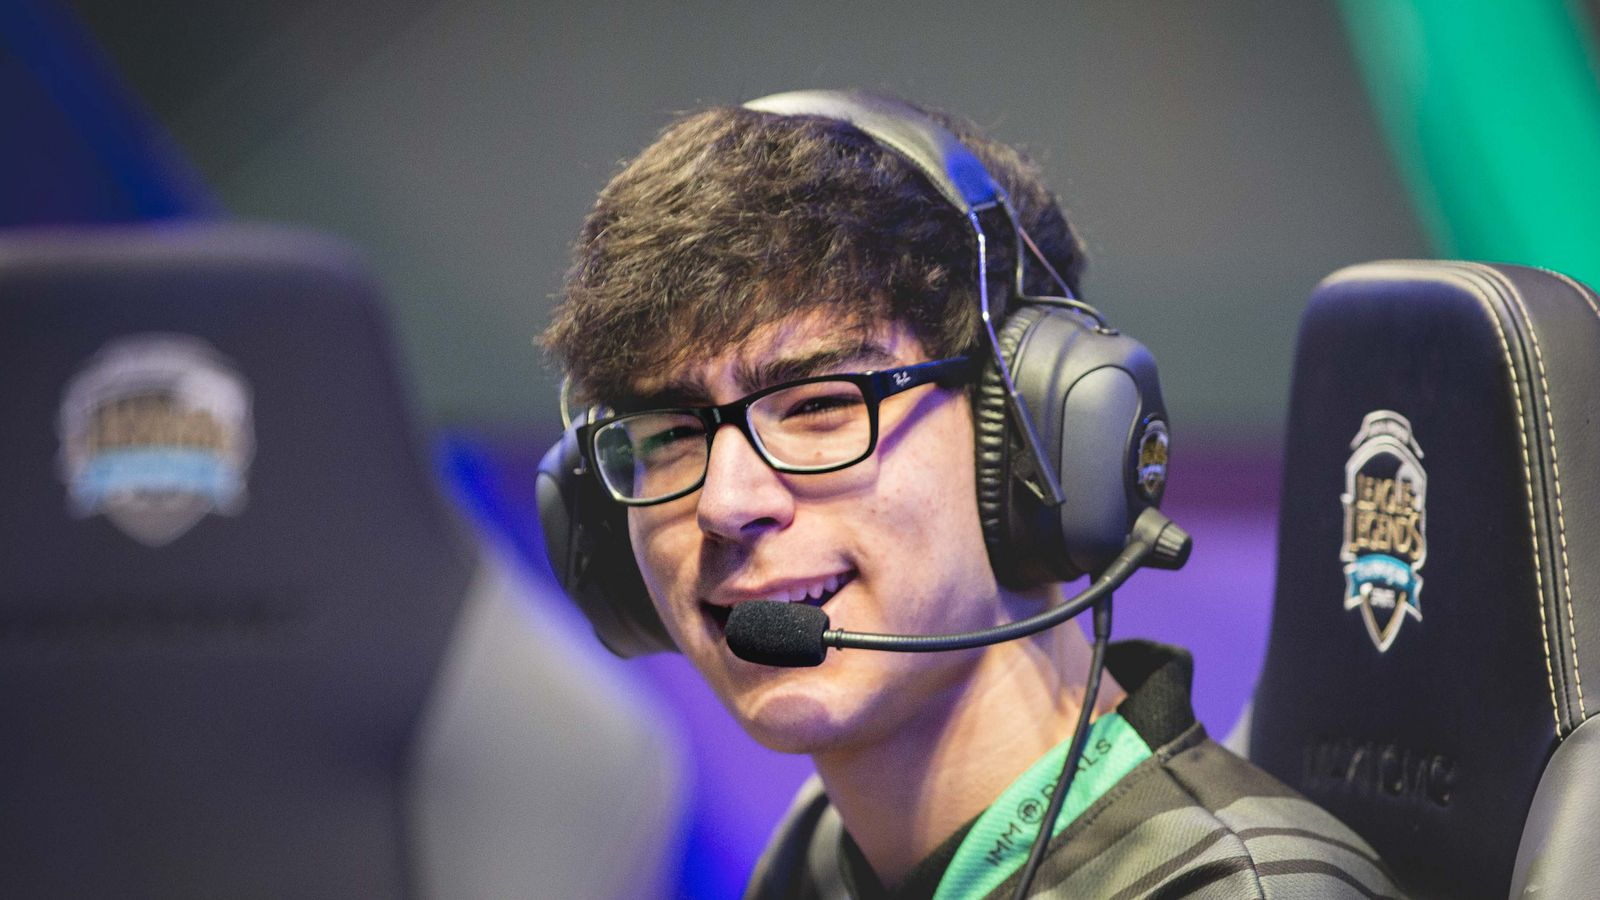 Dardoch moves to Counter Logic Gaming